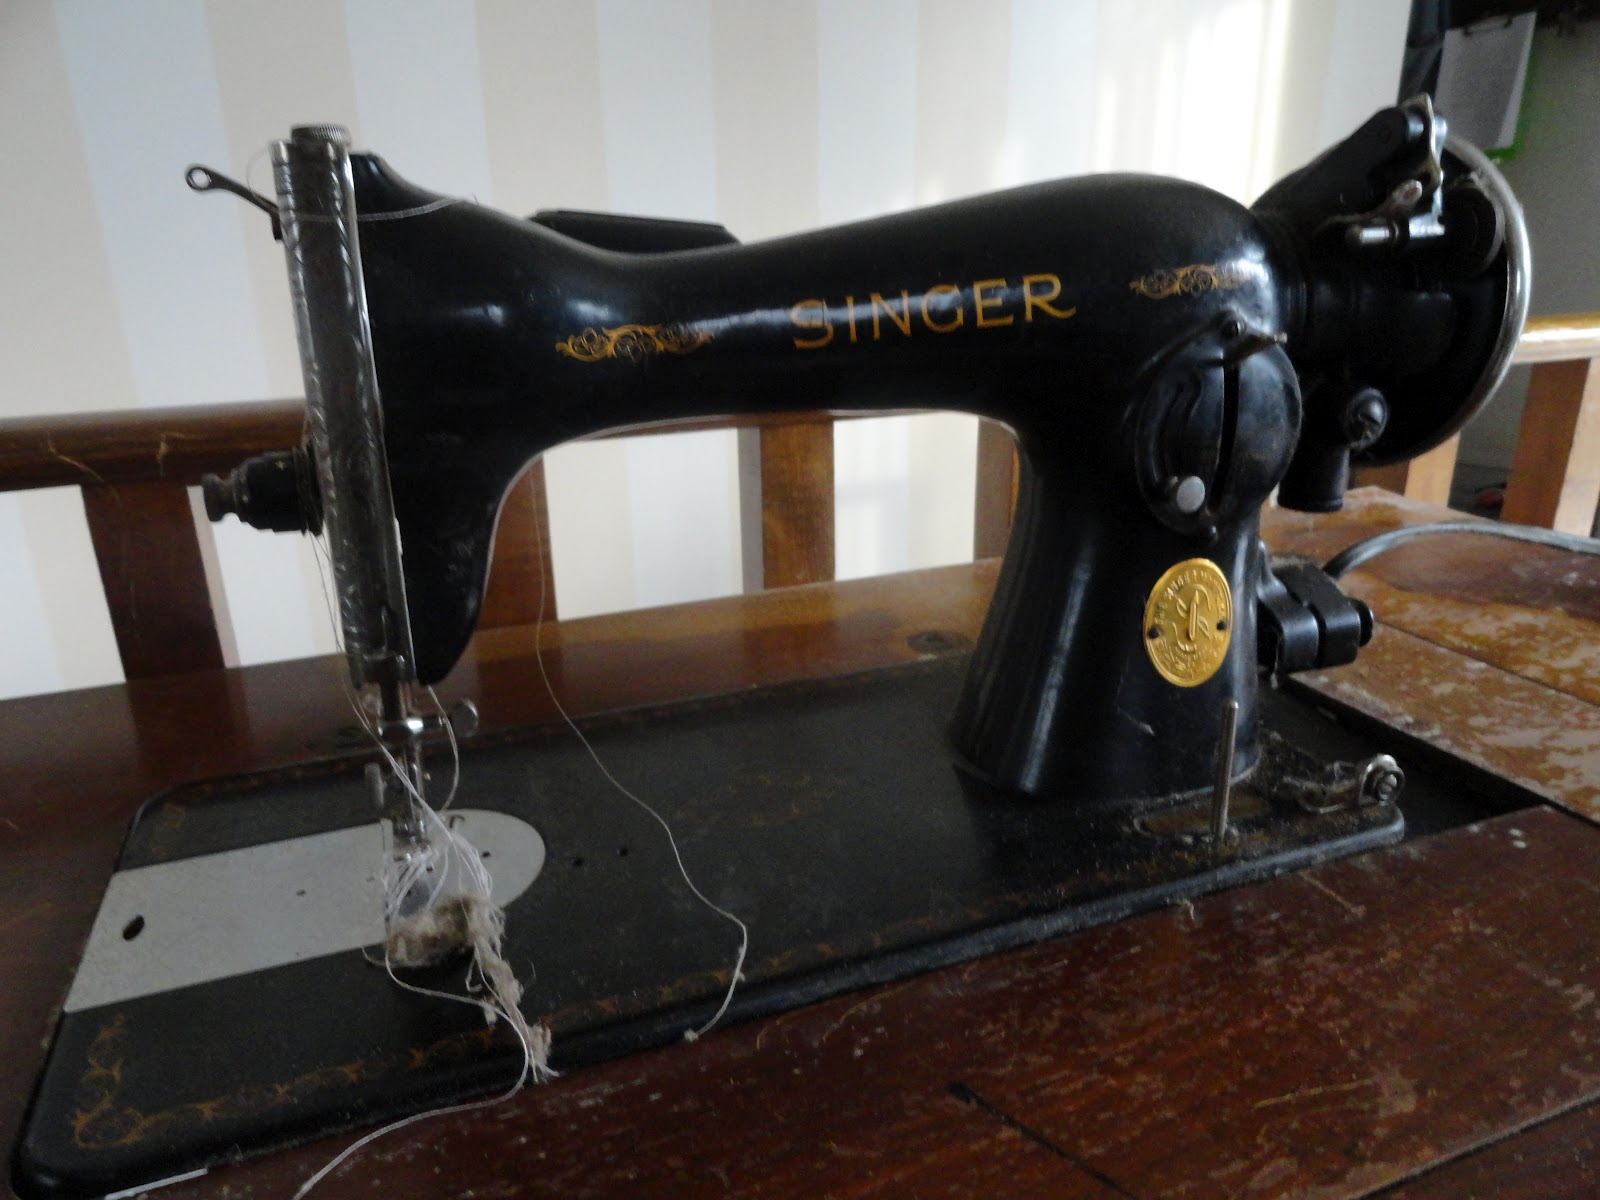 dress+044 sewing by day industrial singer sewing machine singer 15 91 wiring diagram at panicattacktreatment.co